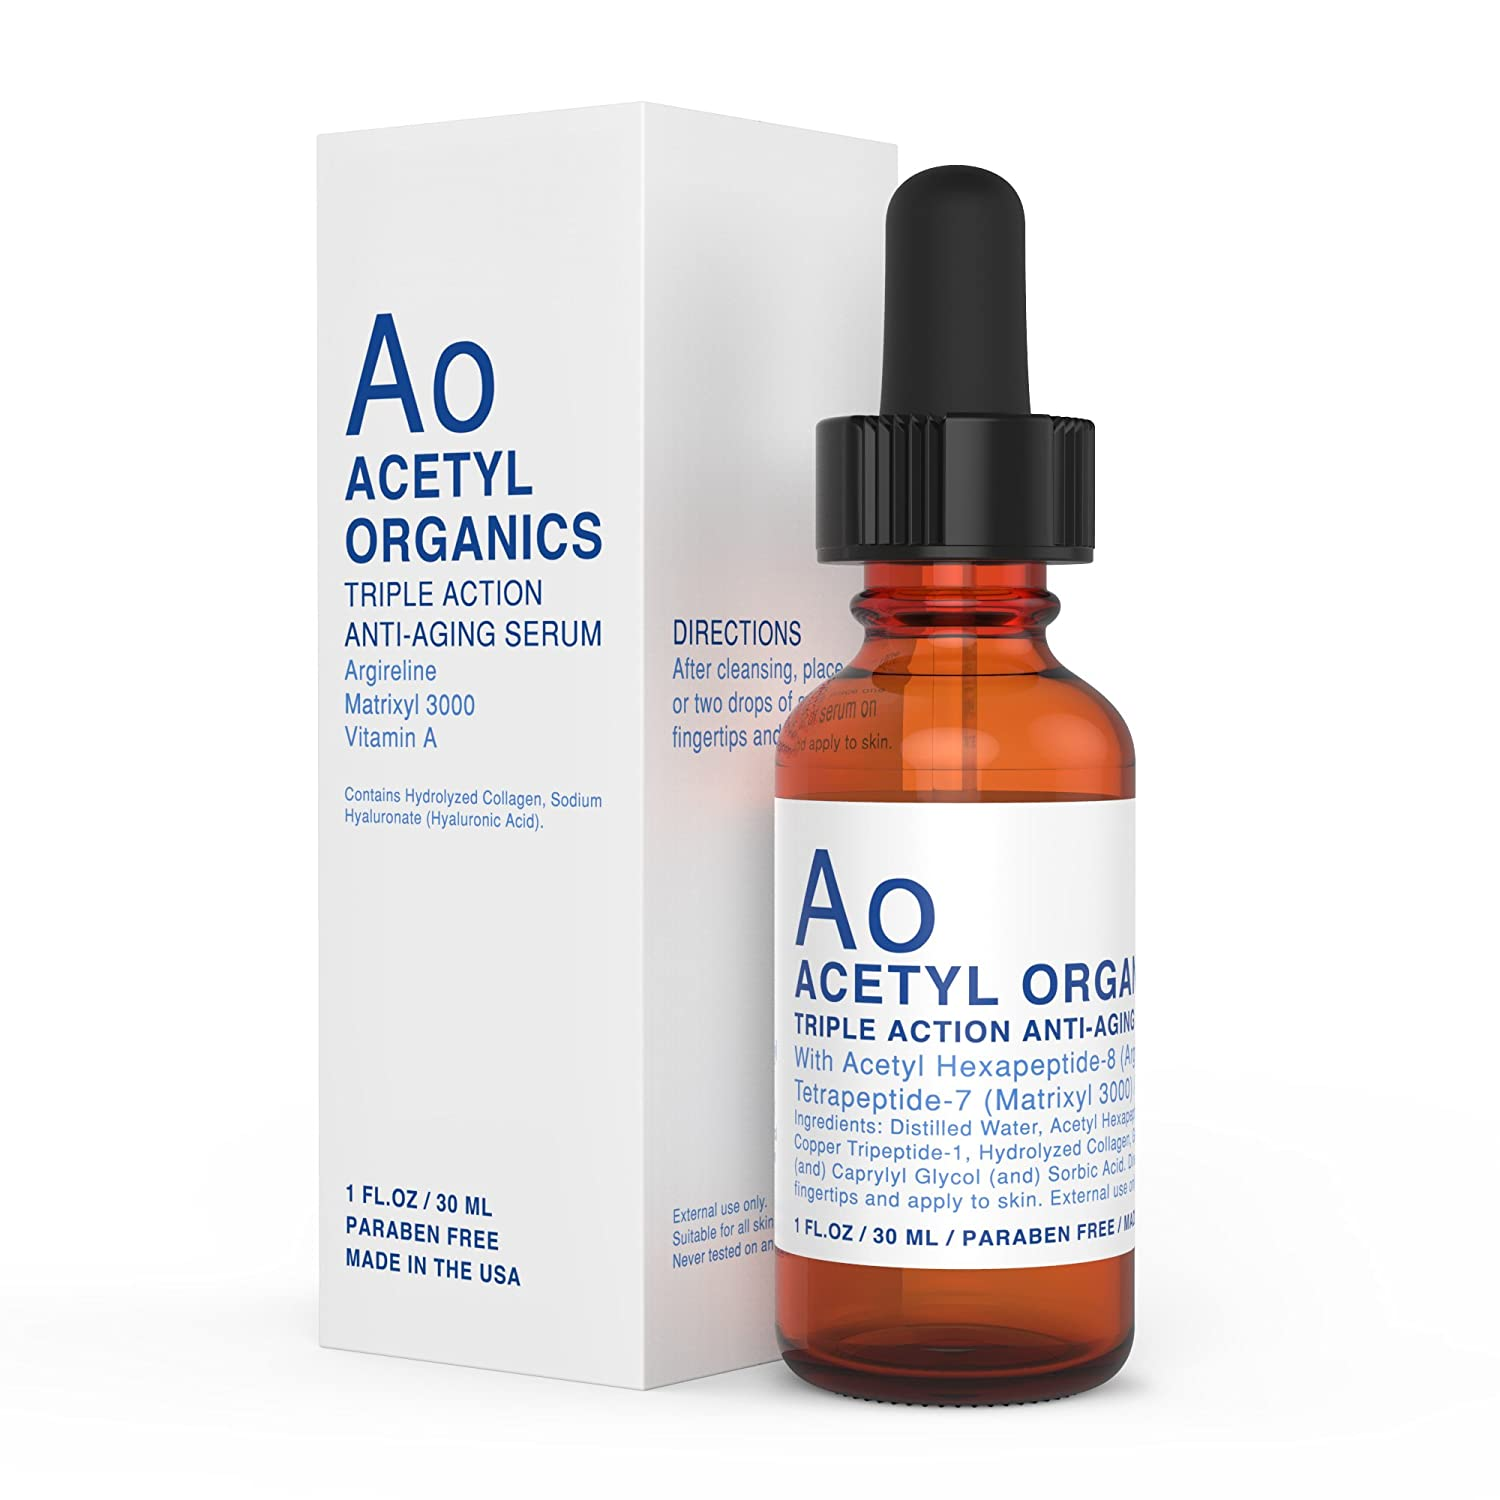 The anti-ageing serum that sells every 20 seconds advise